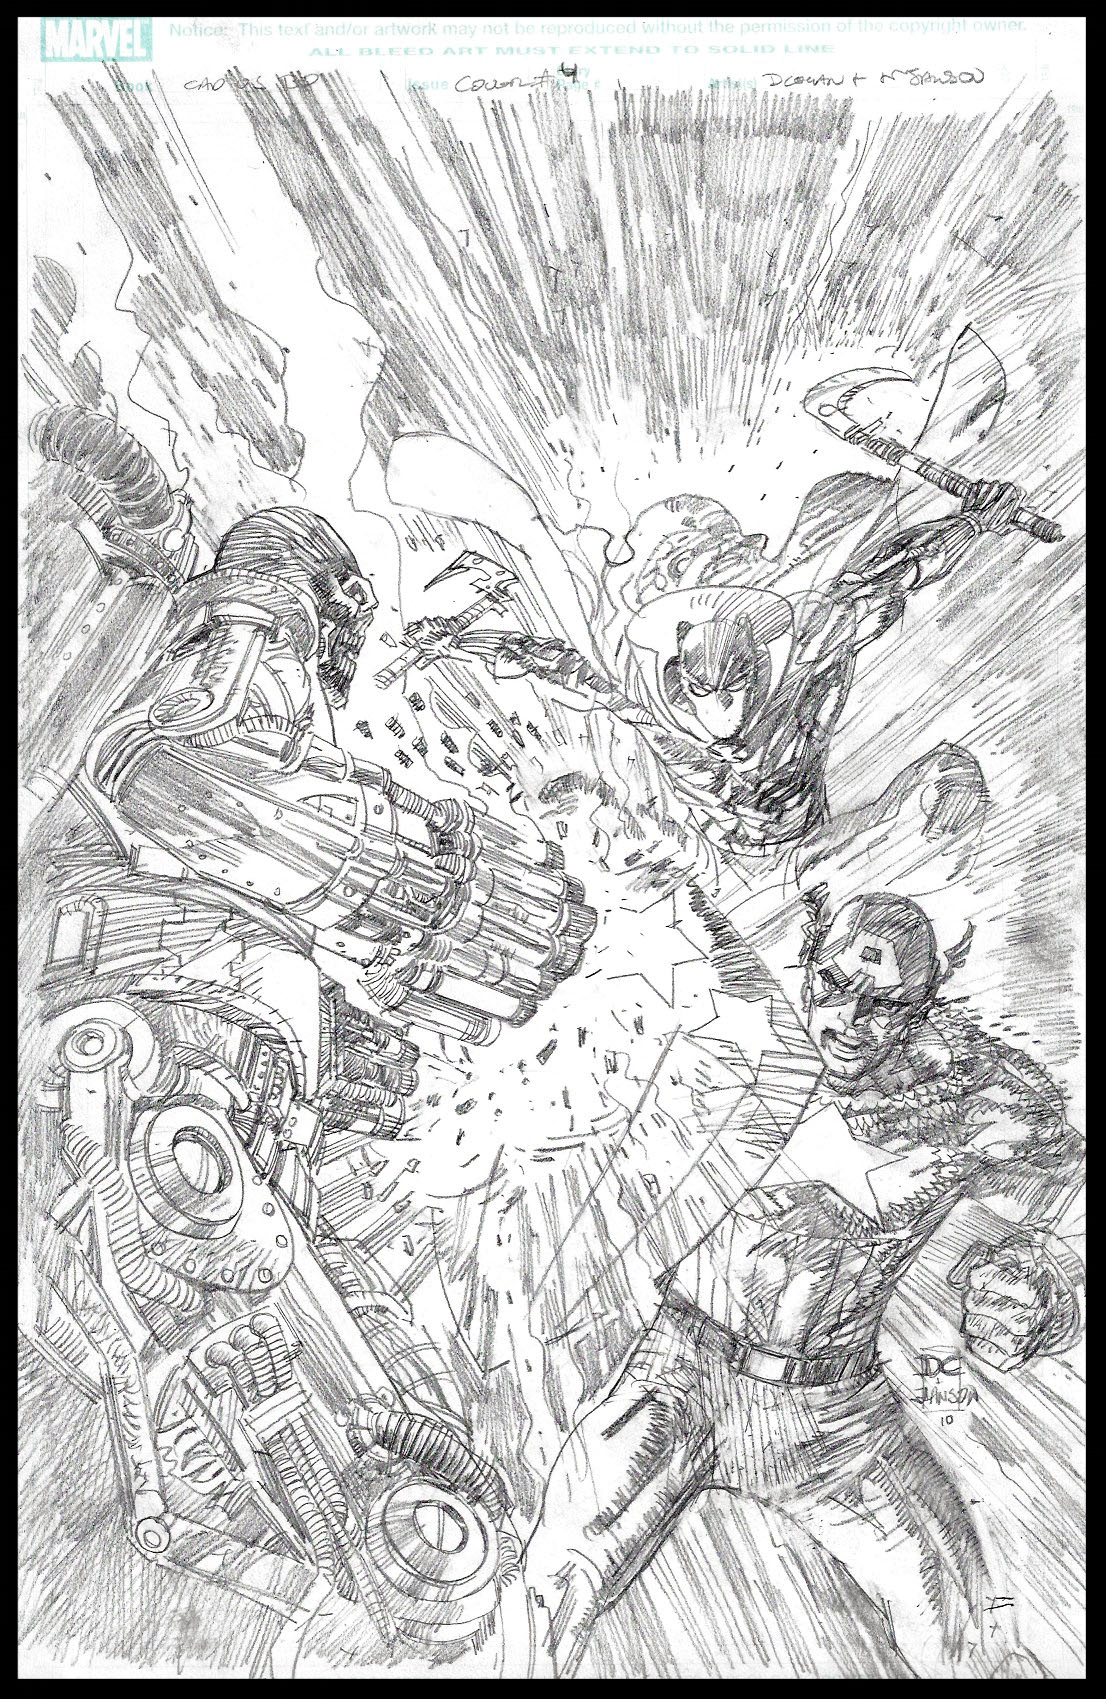 Flags of Our Fathers #4 - Cover - Pencils